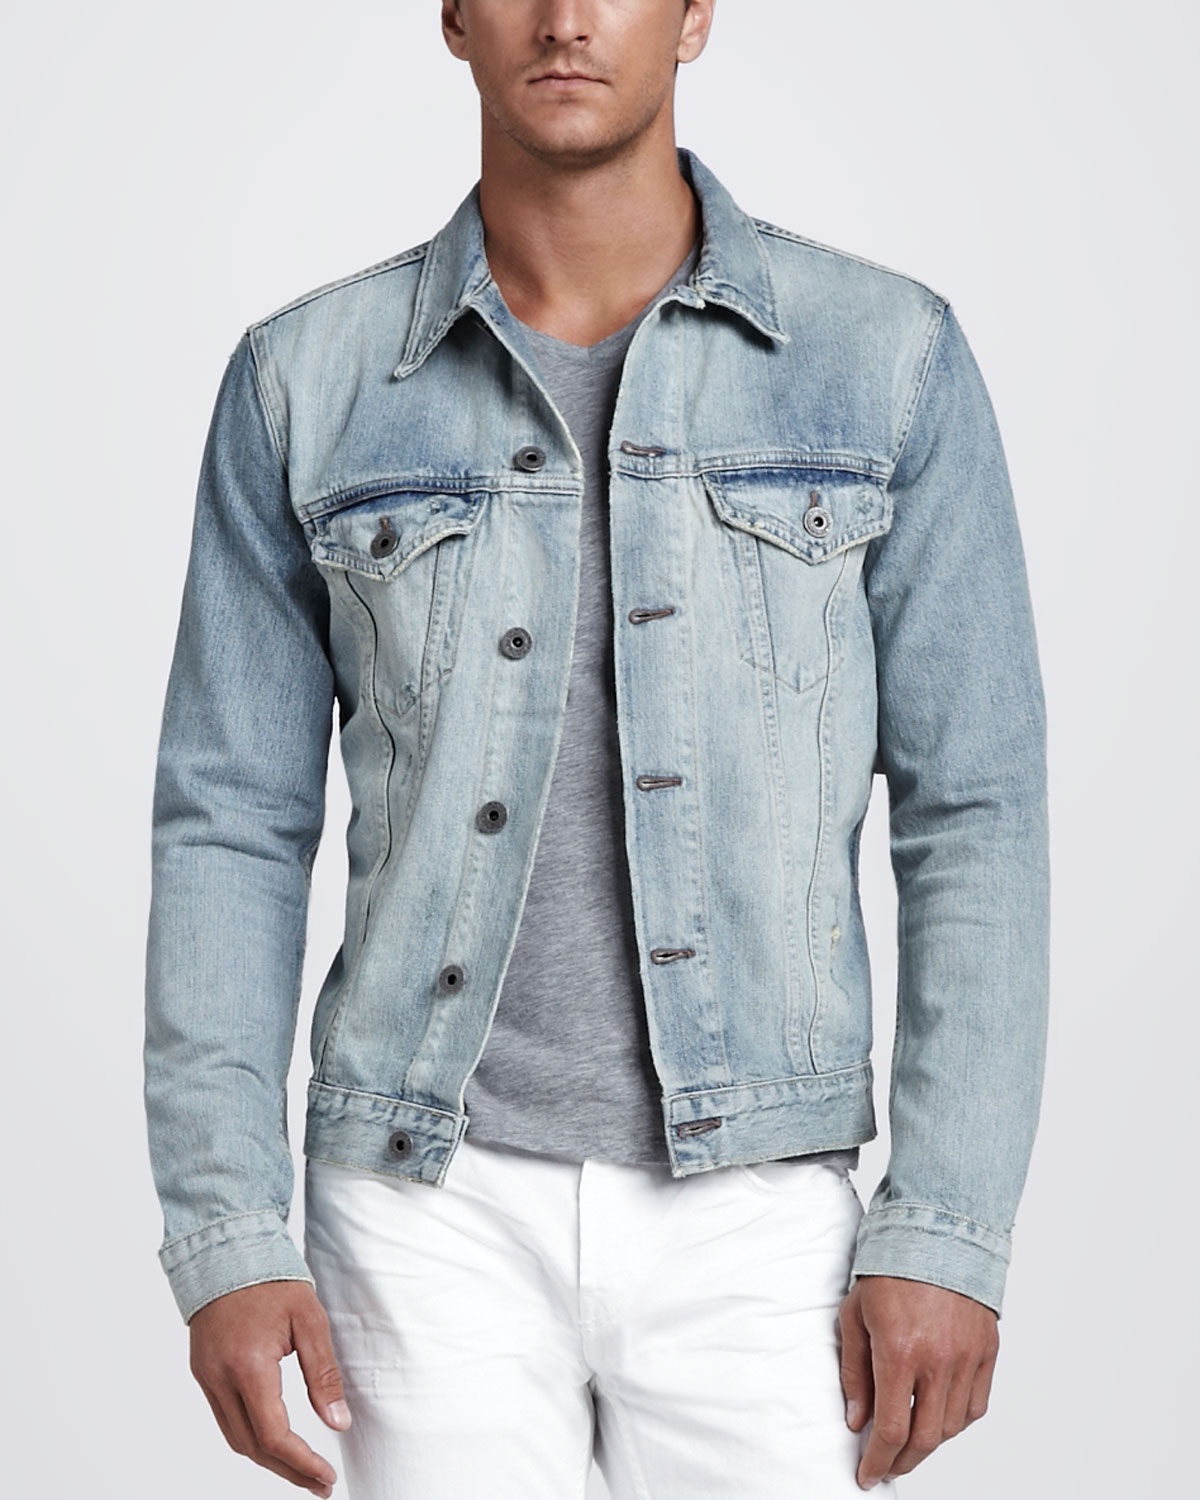 J Brand Owen Light Wash Denim Jacket In Blue For Men Lyst